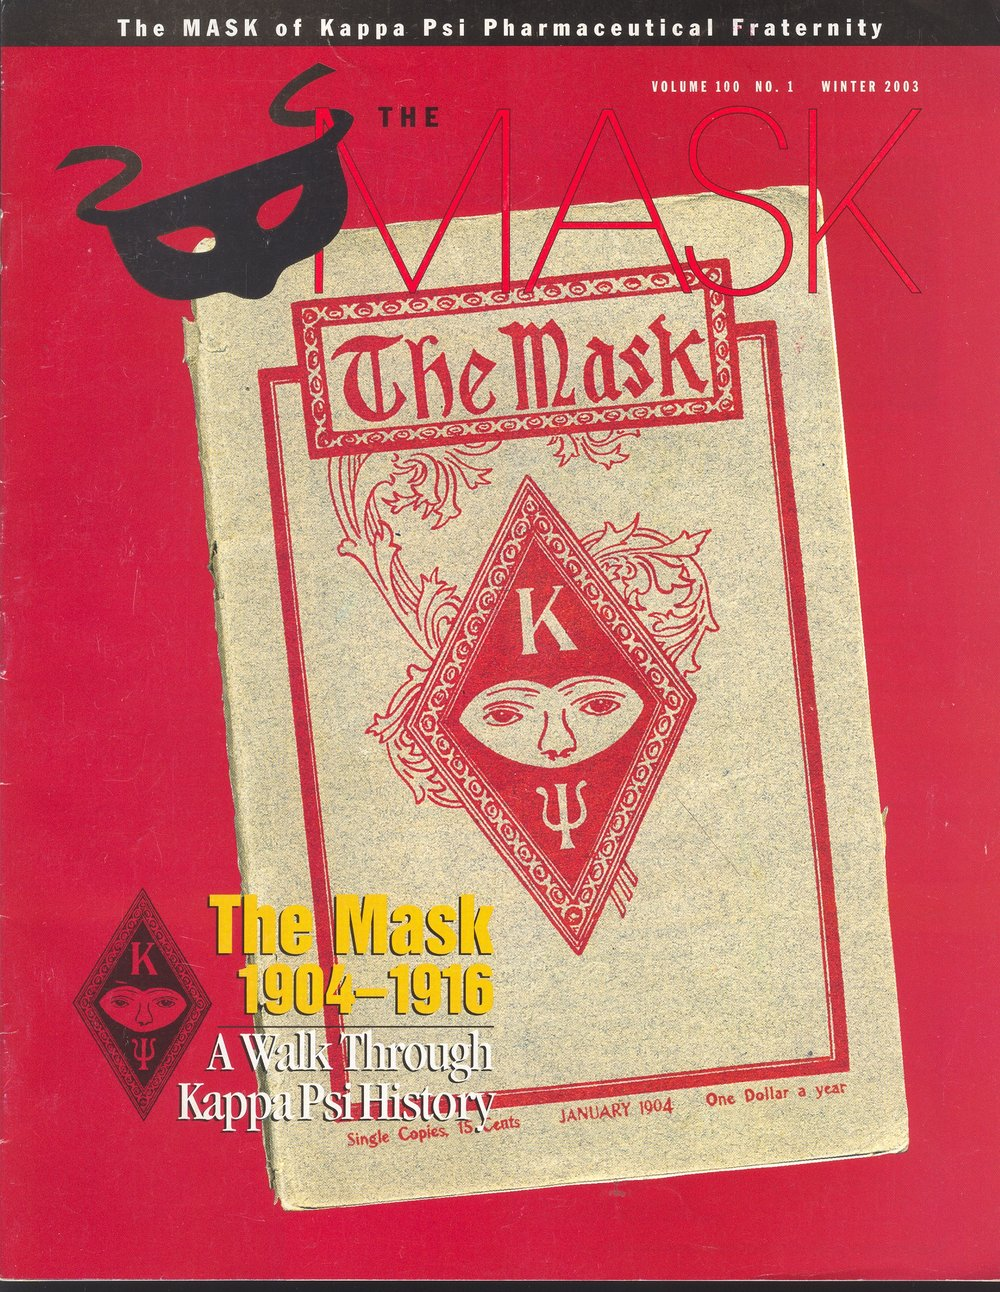 mask_cover_100-1_2003_win.jpg